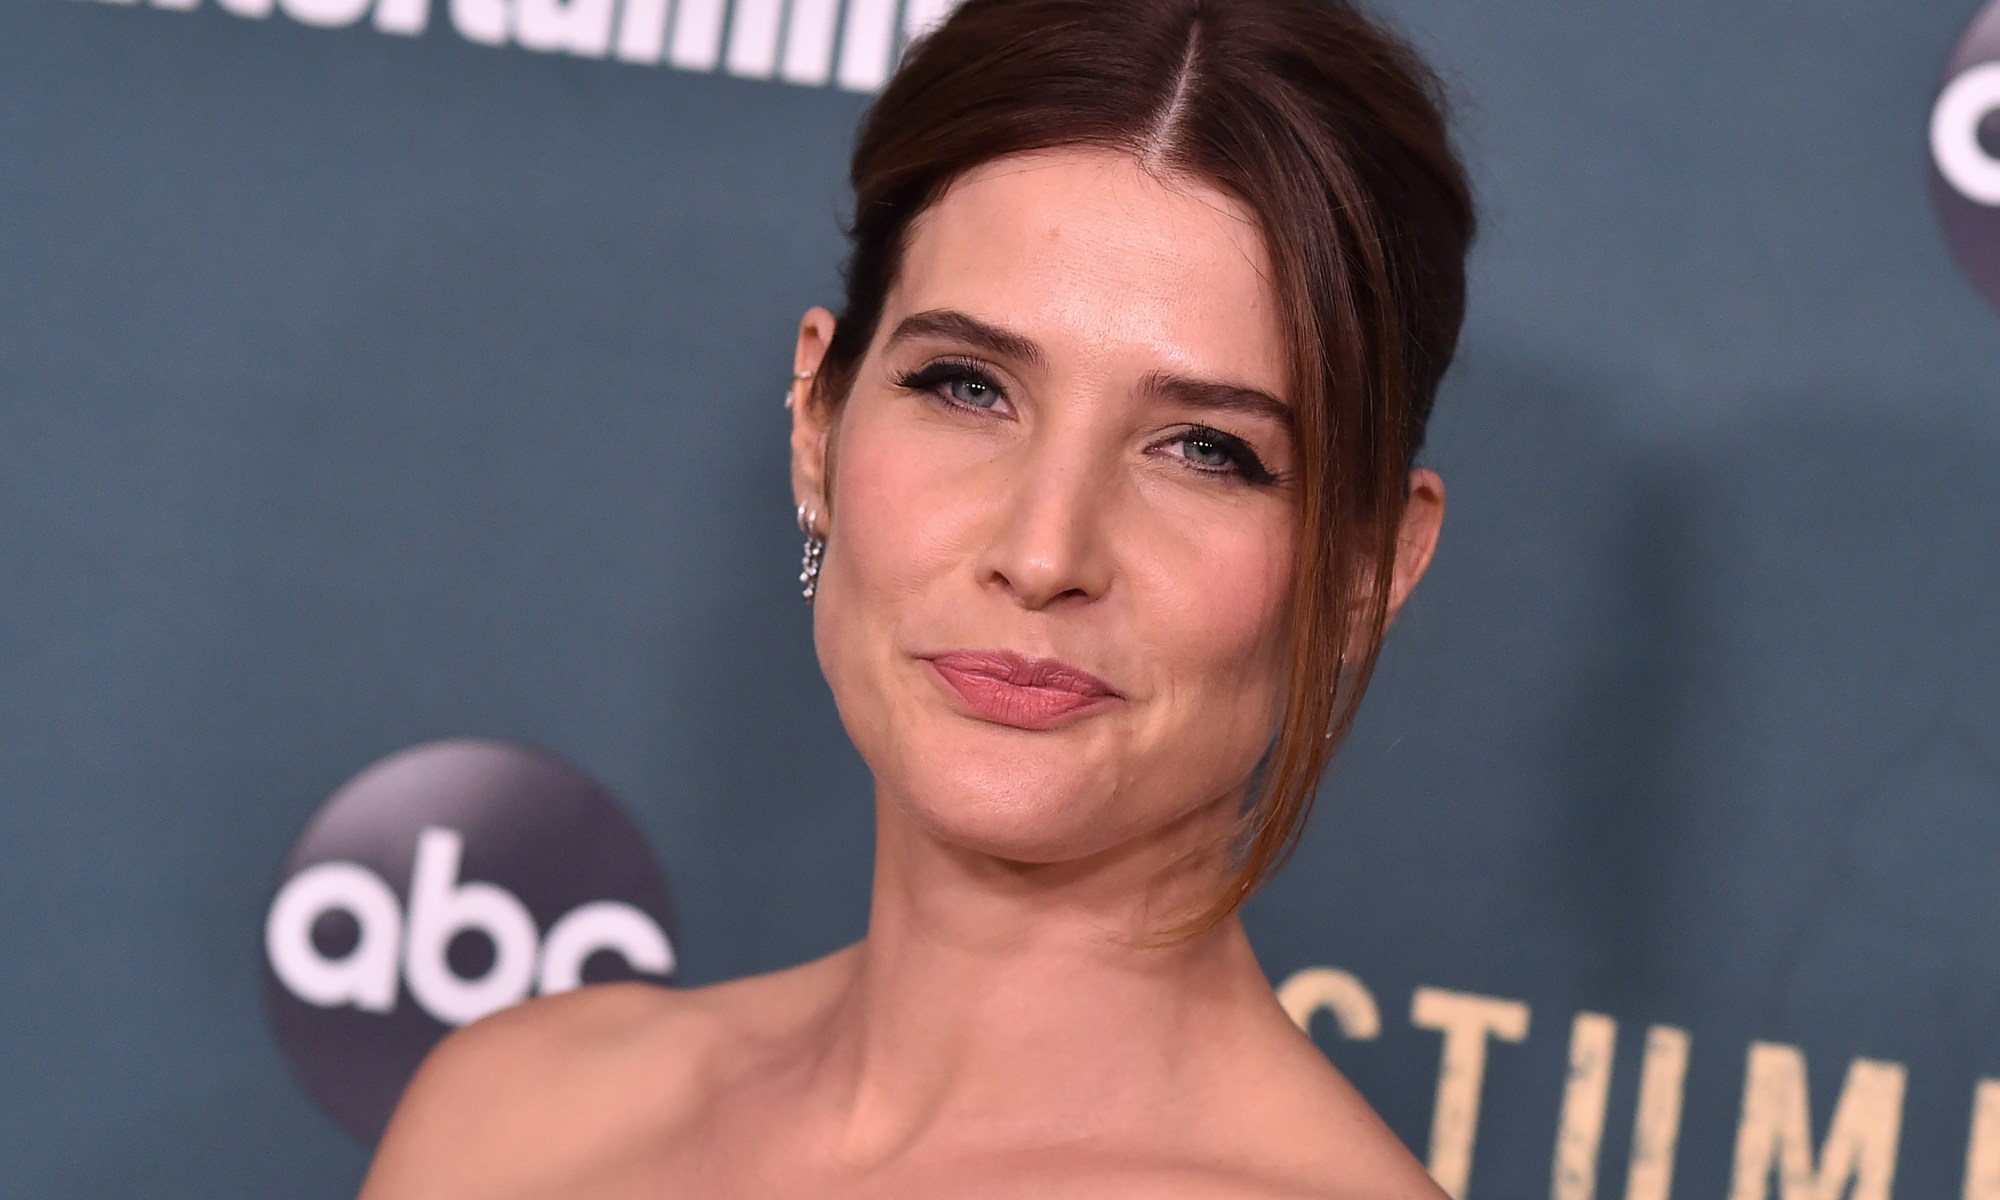 Let's_Go_To_The_Mall_Cobie_Smulders